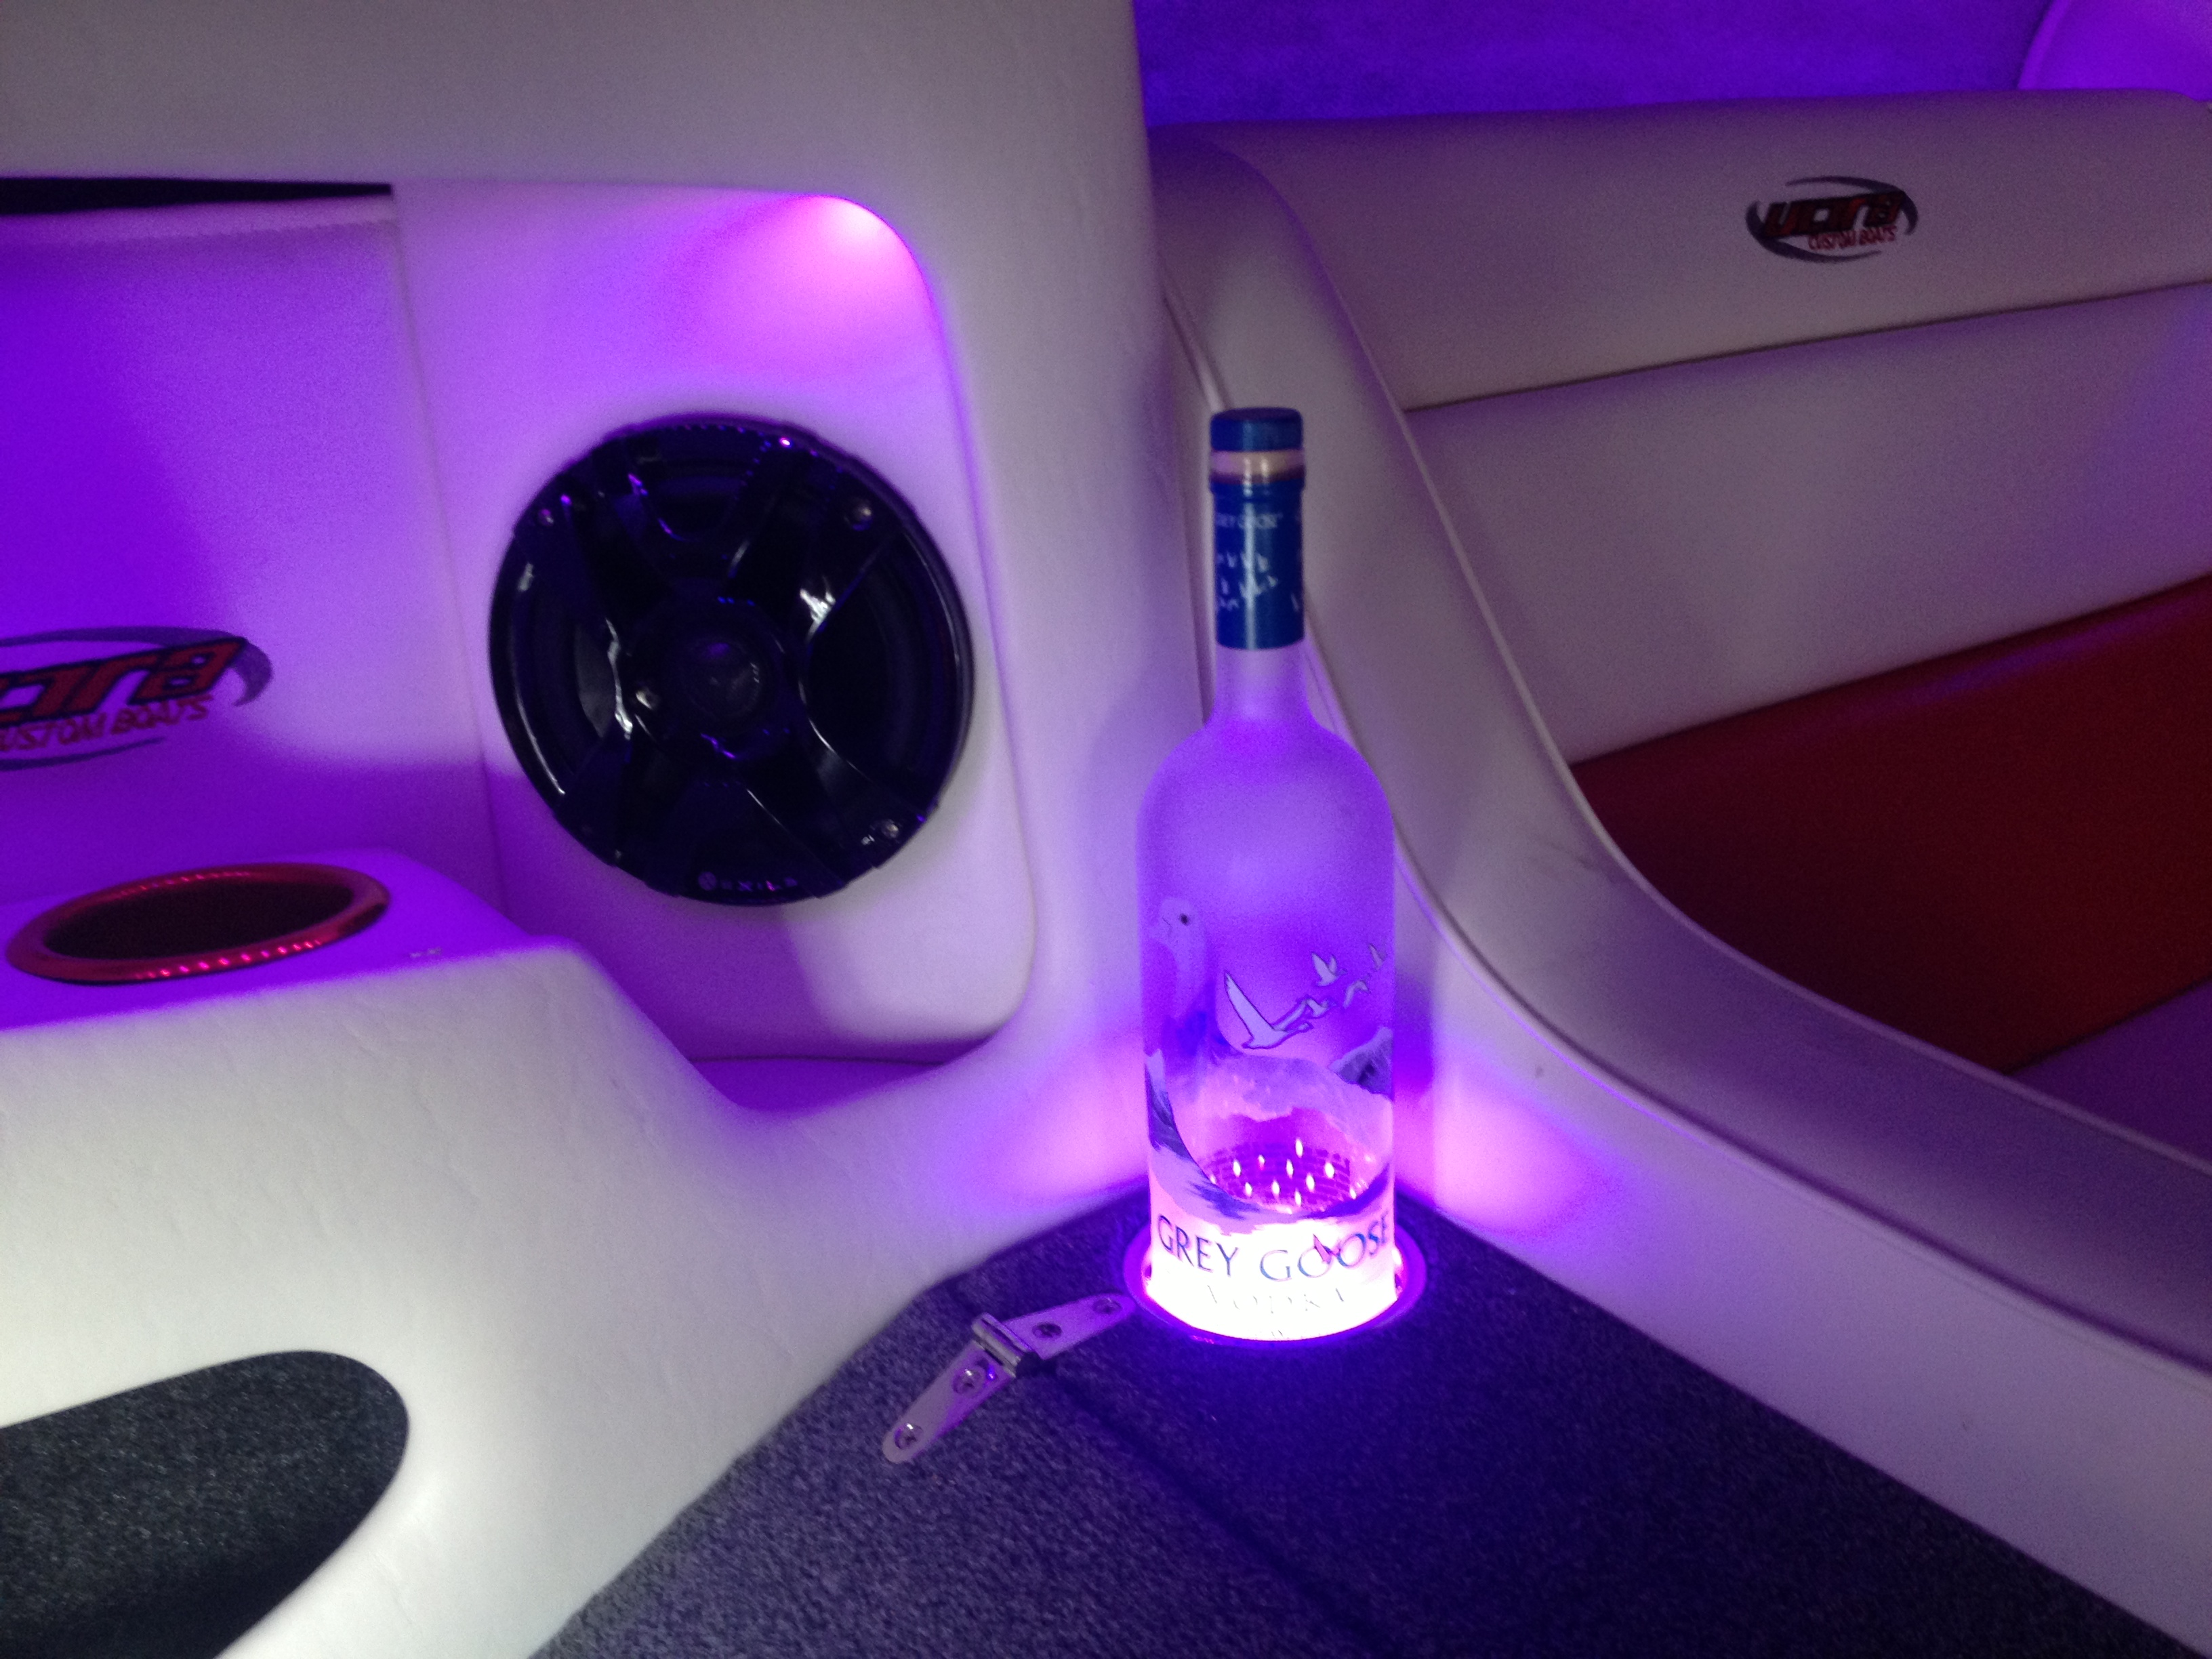 LED Cup holder lighting